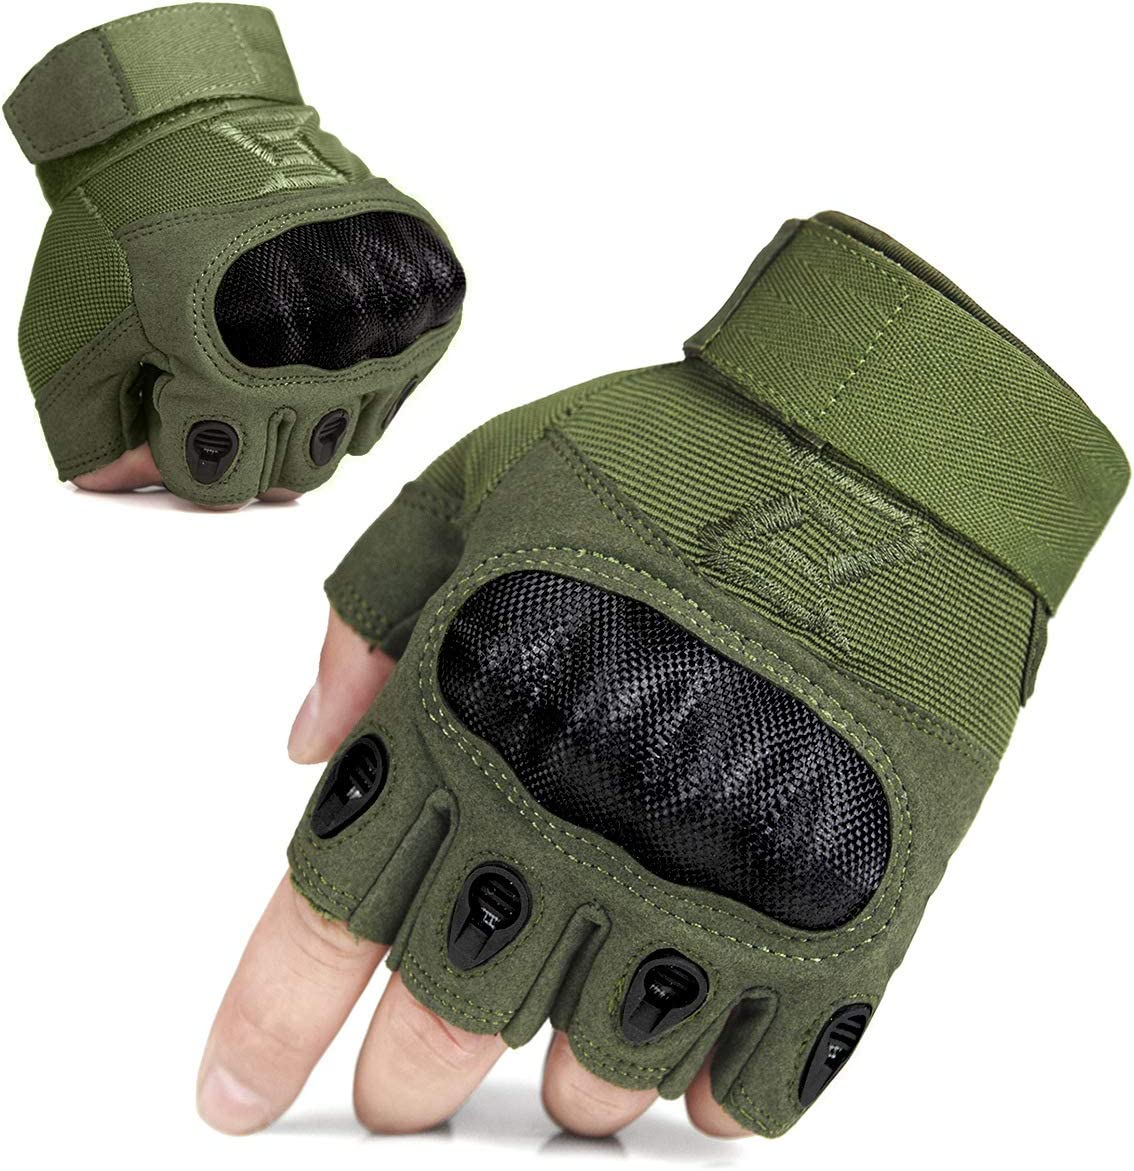 FREE SOLDIER Mens Full Finger Outdoor Sports Cycling Gloves Motorcycle Gloves Fingerless Glove for Hiking Climbing Cross Country Working Gloves